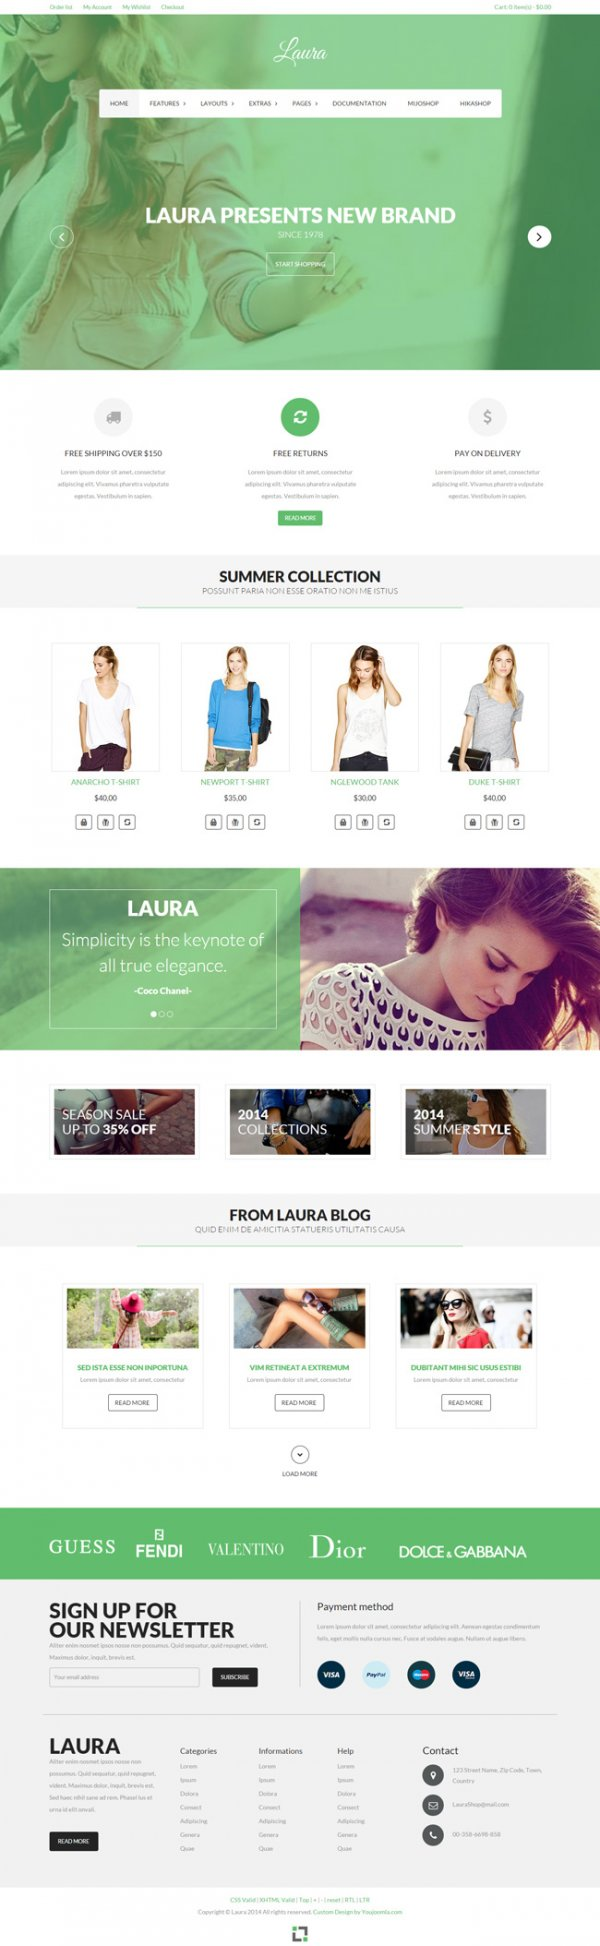 Laura - Joomla eCommerce Template Featuring Mijoshop and Hikashop